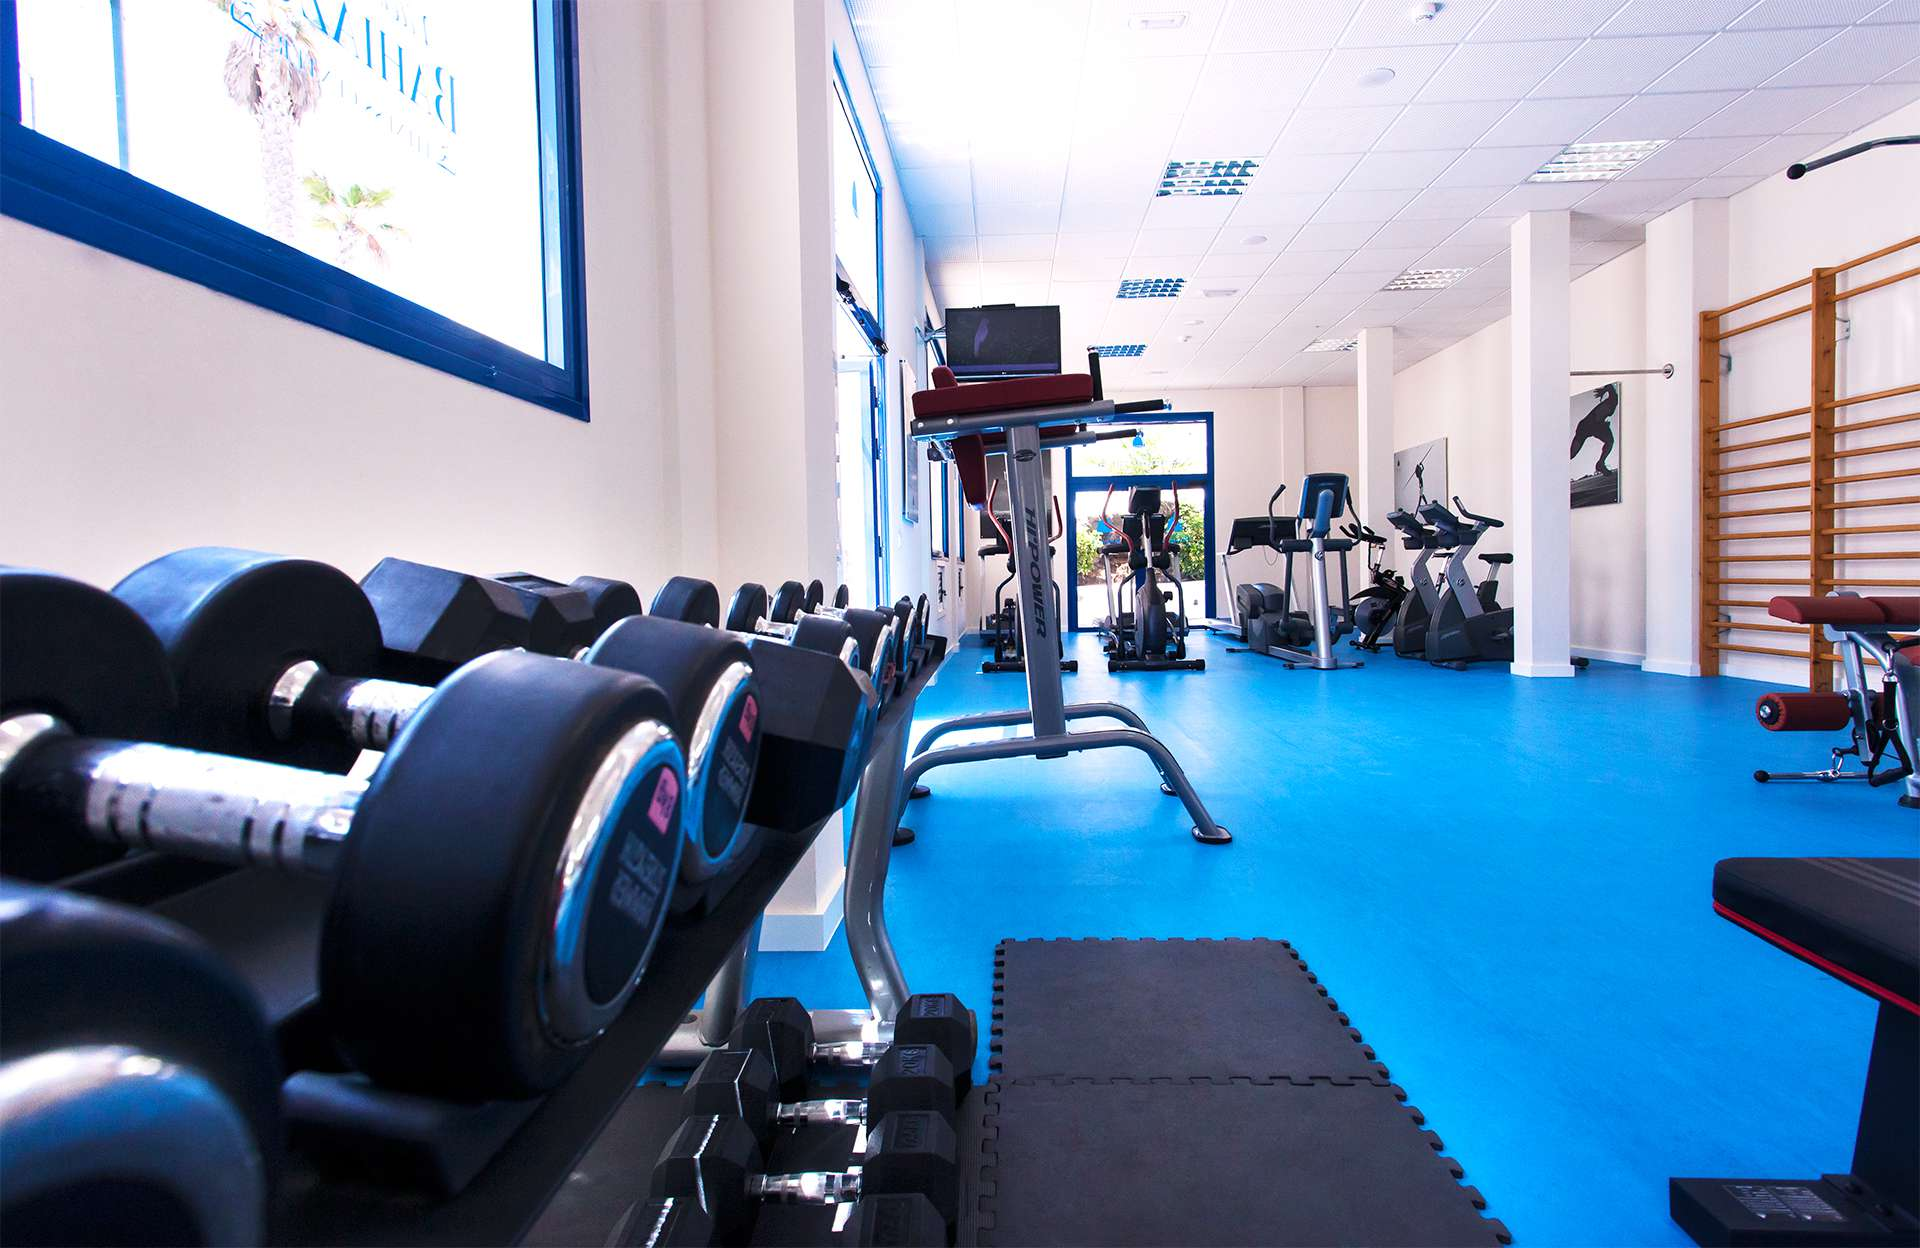 Photo of Possible Benefits of a Joining a Fitness Club